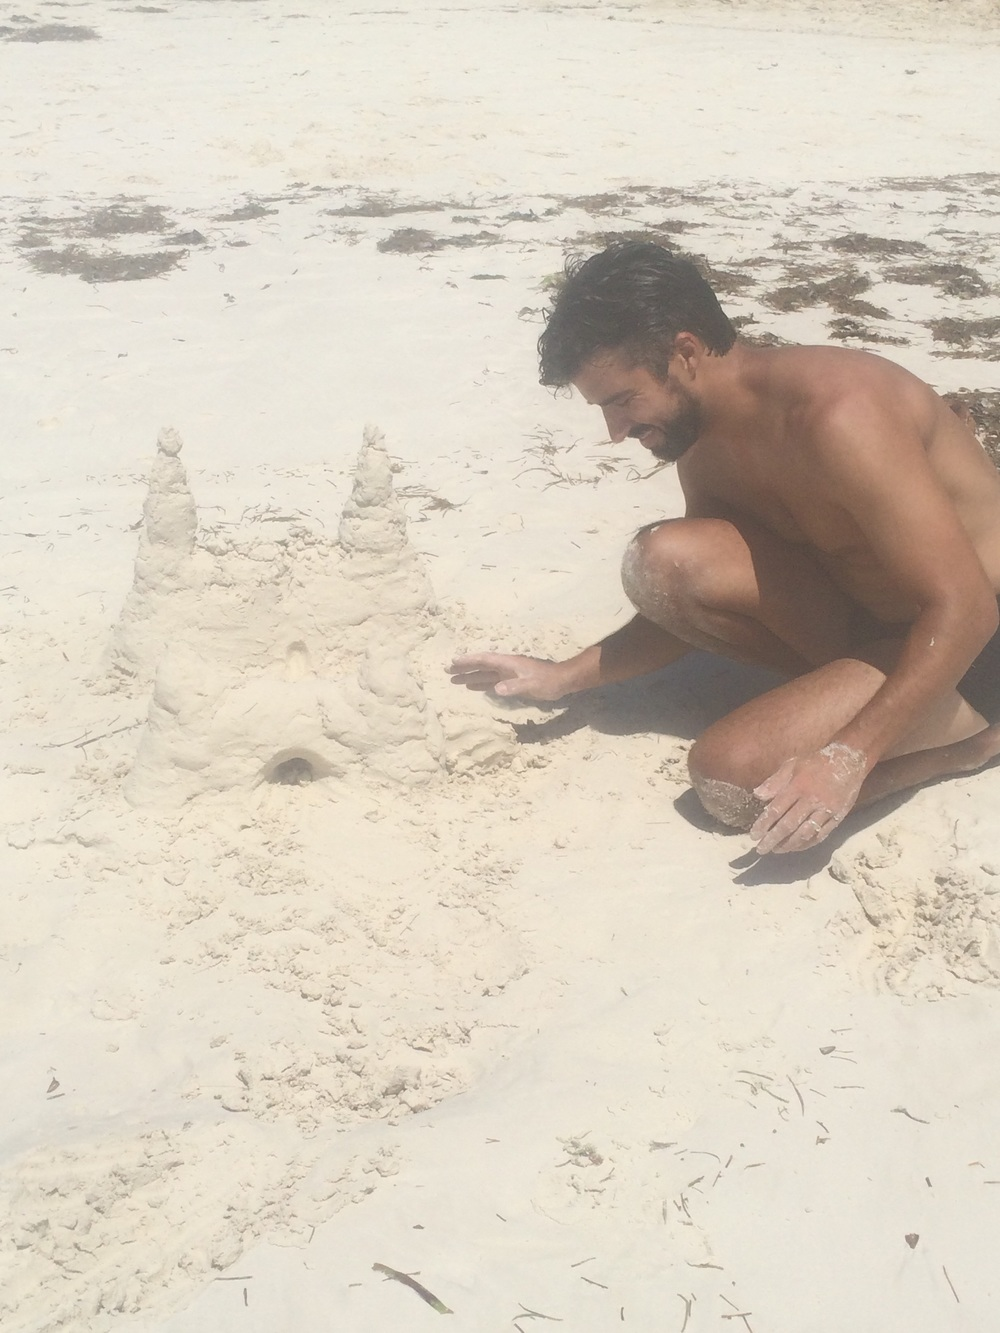 I think Anthony enjoyed making sandcastles the most!